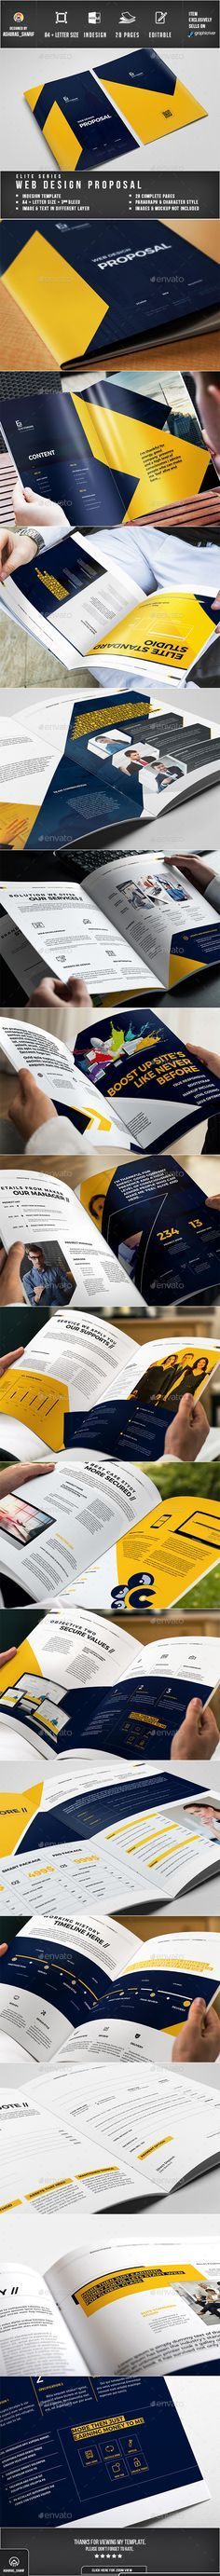 Web-design Proposal Template InDesign INDD A4 and US Letter Size ...